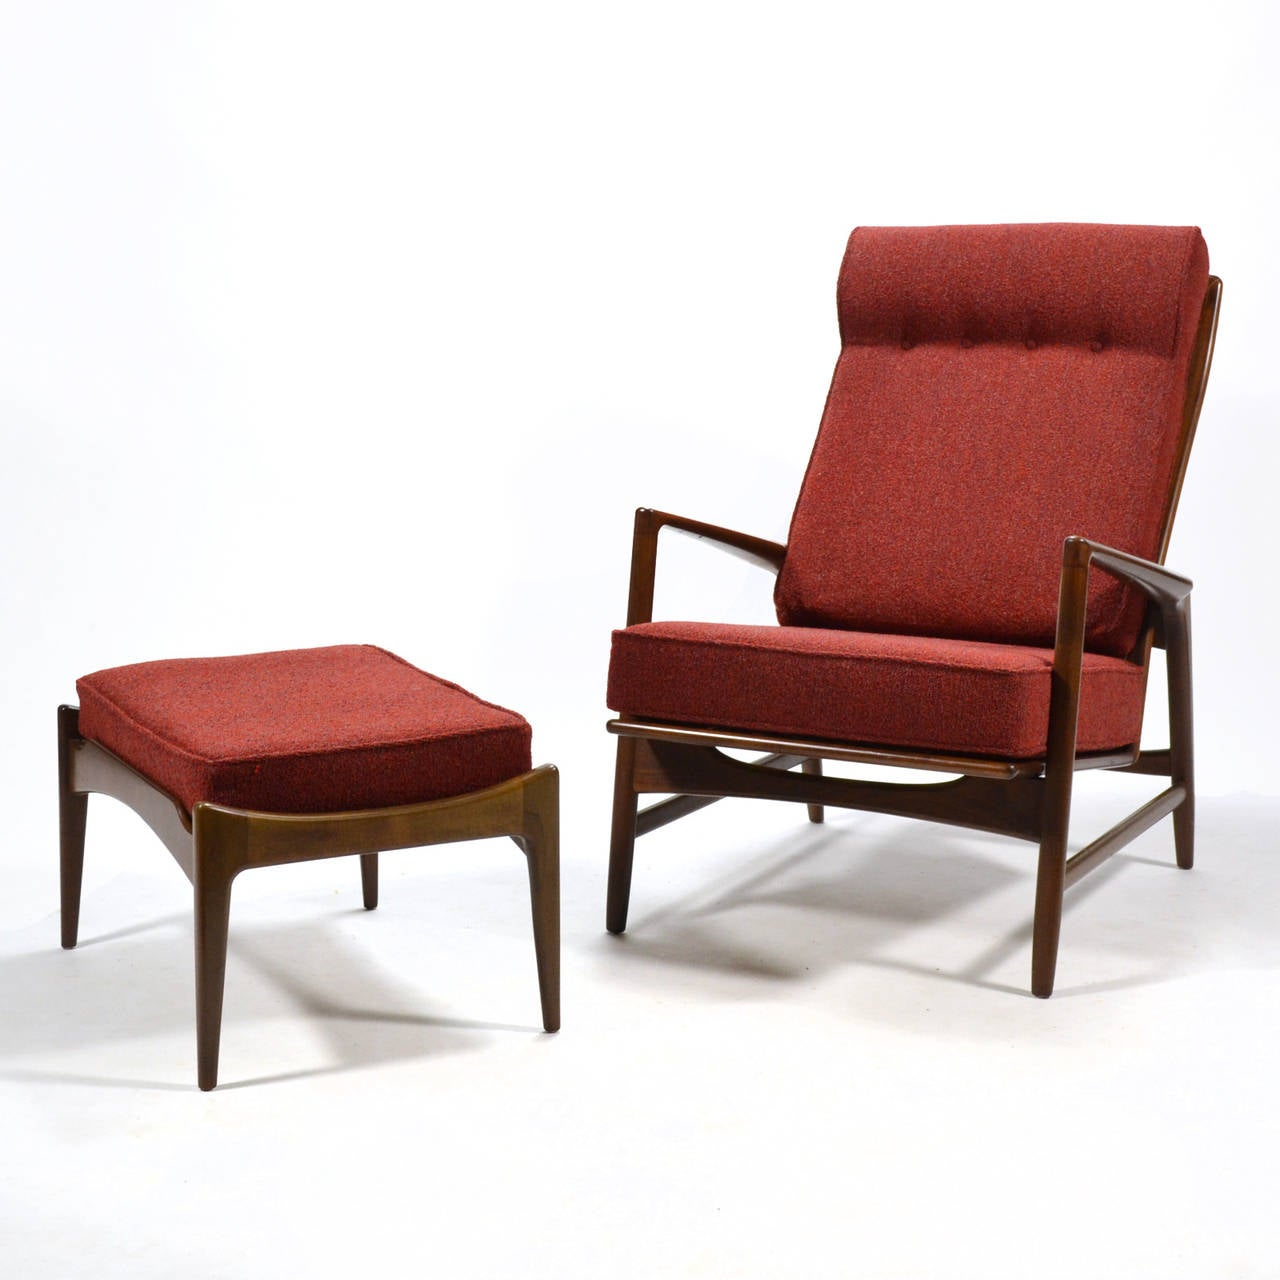 This sculptural pair of lounge chairs by ib kofod larsen is no longer - Ib Kofod Larsen Reclining Lounge Chair And Ottoman 3